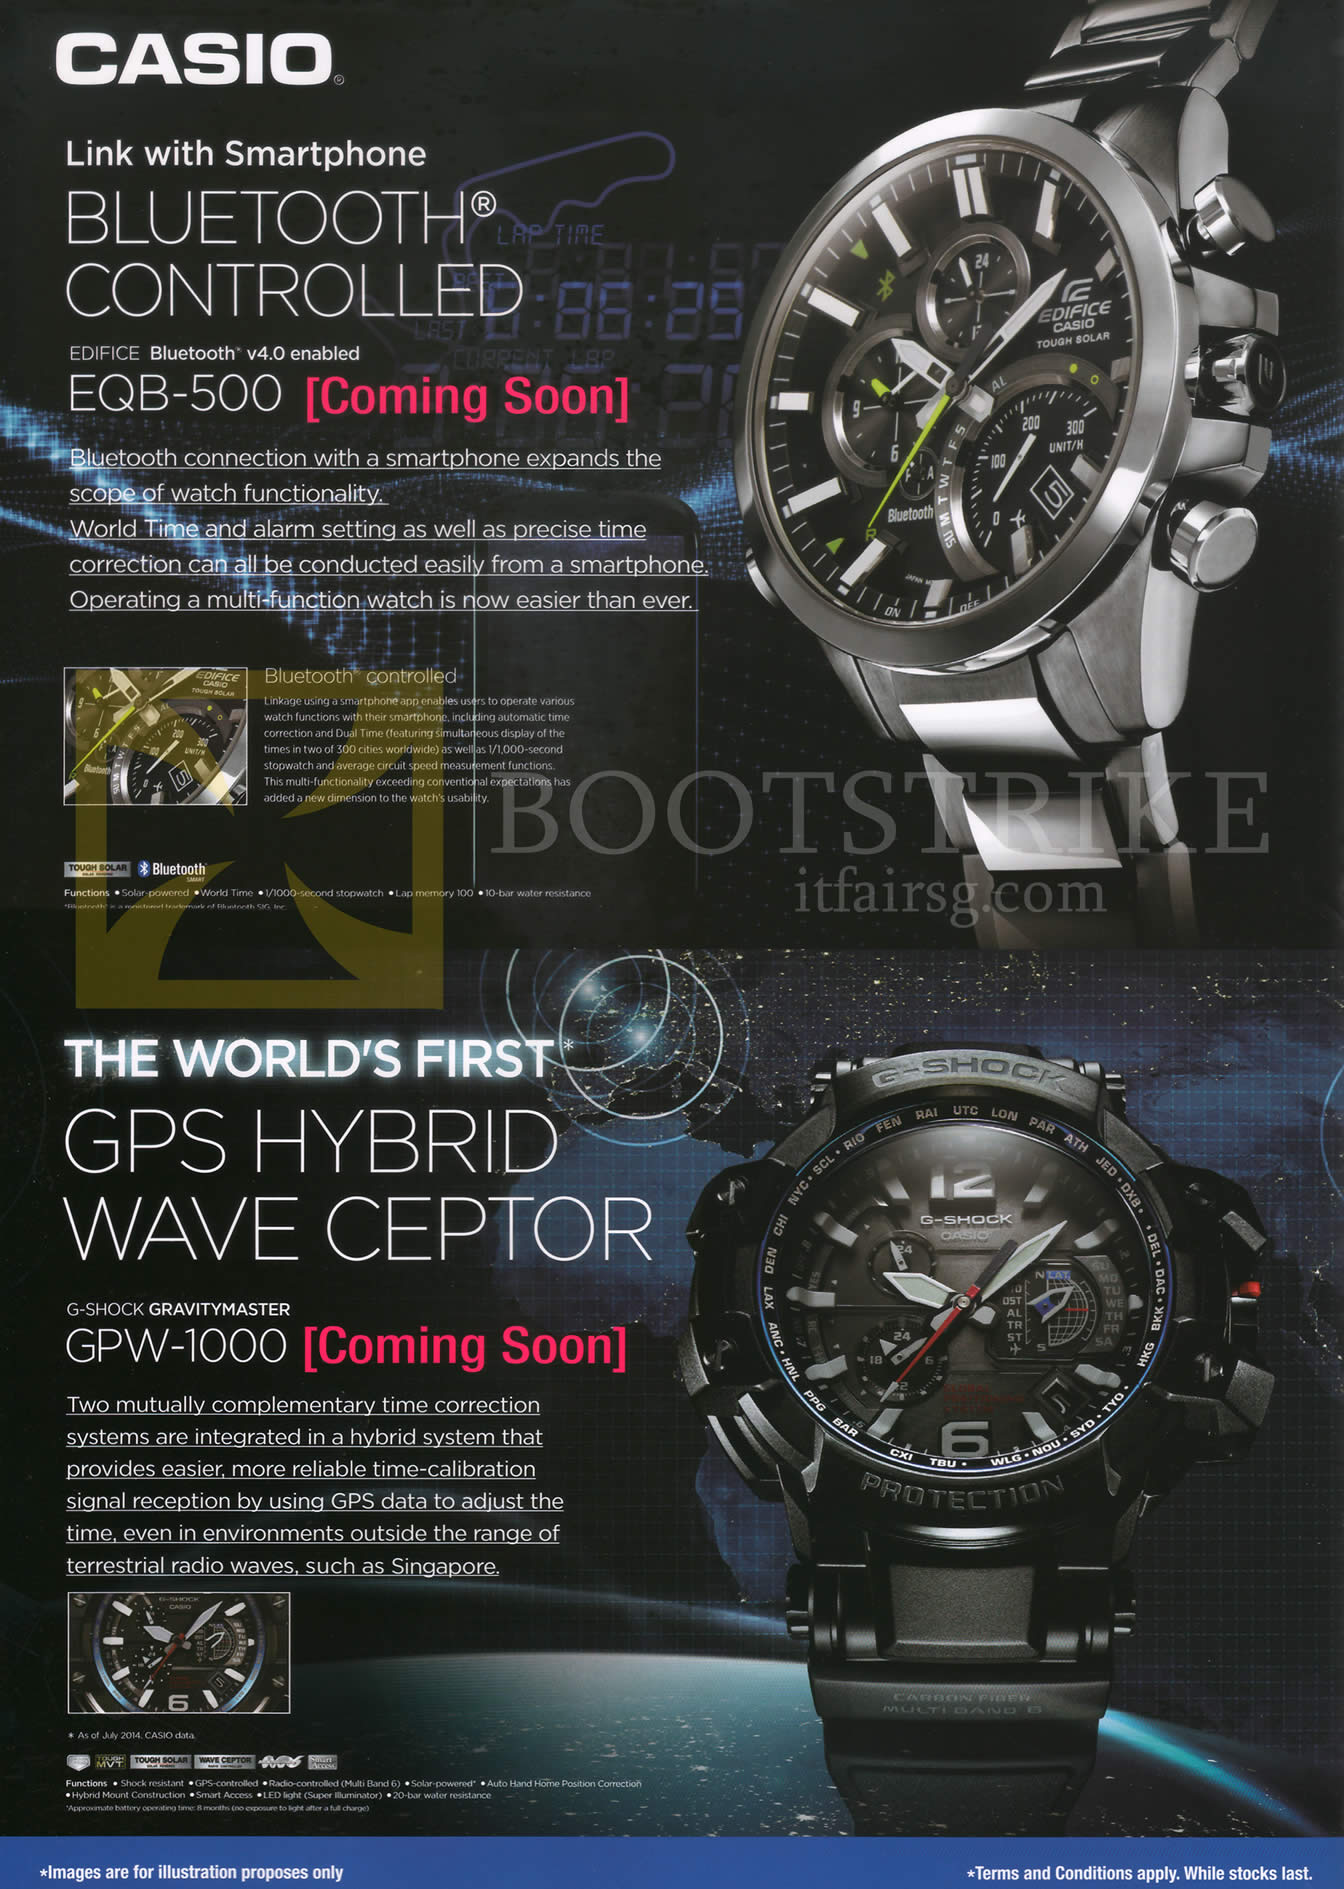 COMEX 2014 price list image brochure of Casio Wrist Watches Edifice EQB-500, G-Shock Gravitymaster GPW-1000